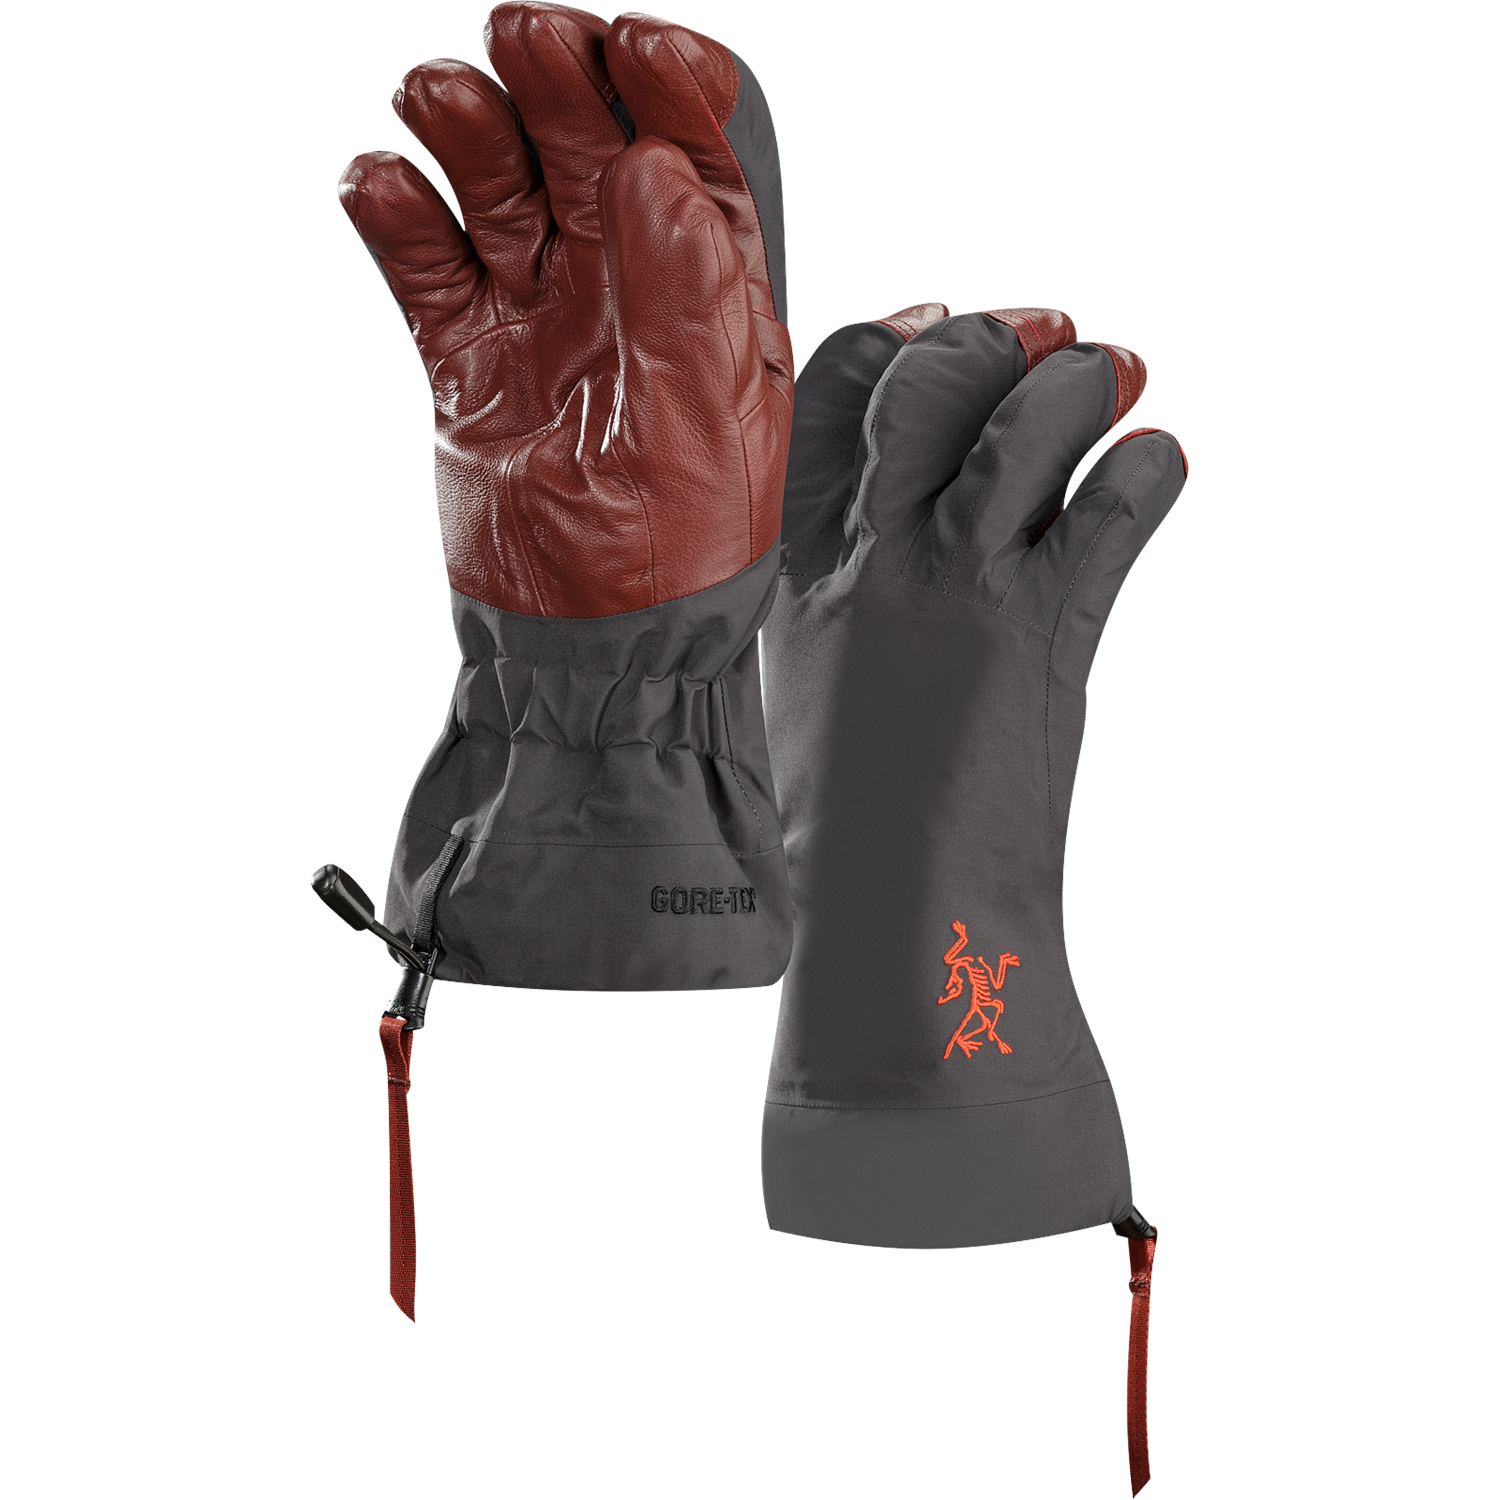 Worst possible messy gloves uses please never ruin fine leather anything